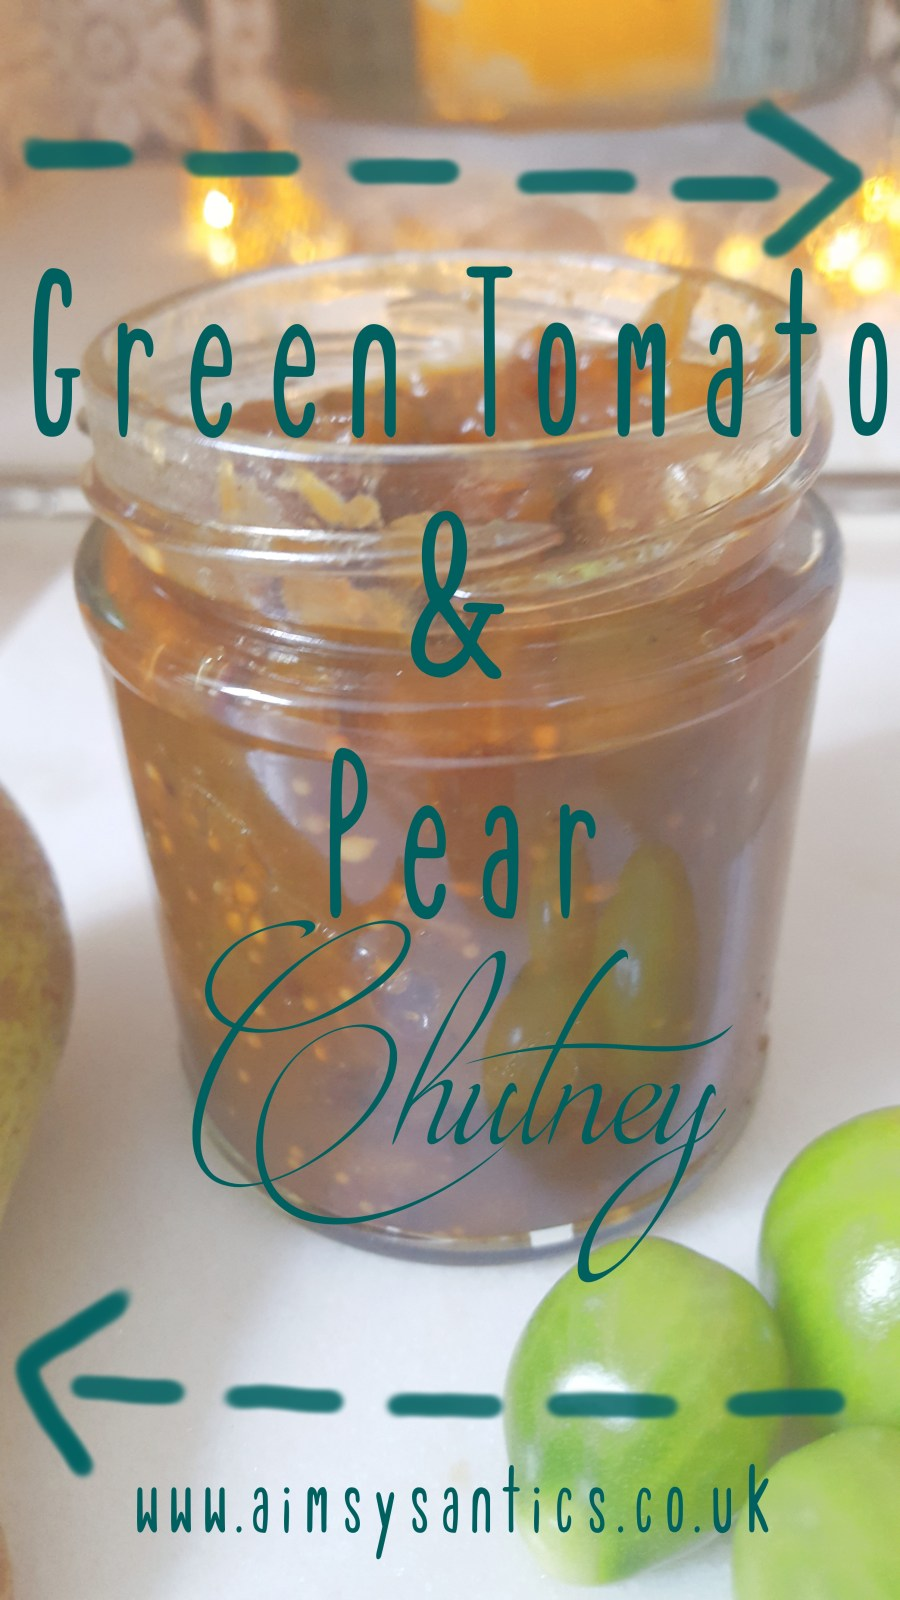 "Image of green tomato and pear chutney in a jar, with green tomatoes and a pear in front of the jar. Text overlay of ""Green Tomato & Pear Chutney"""